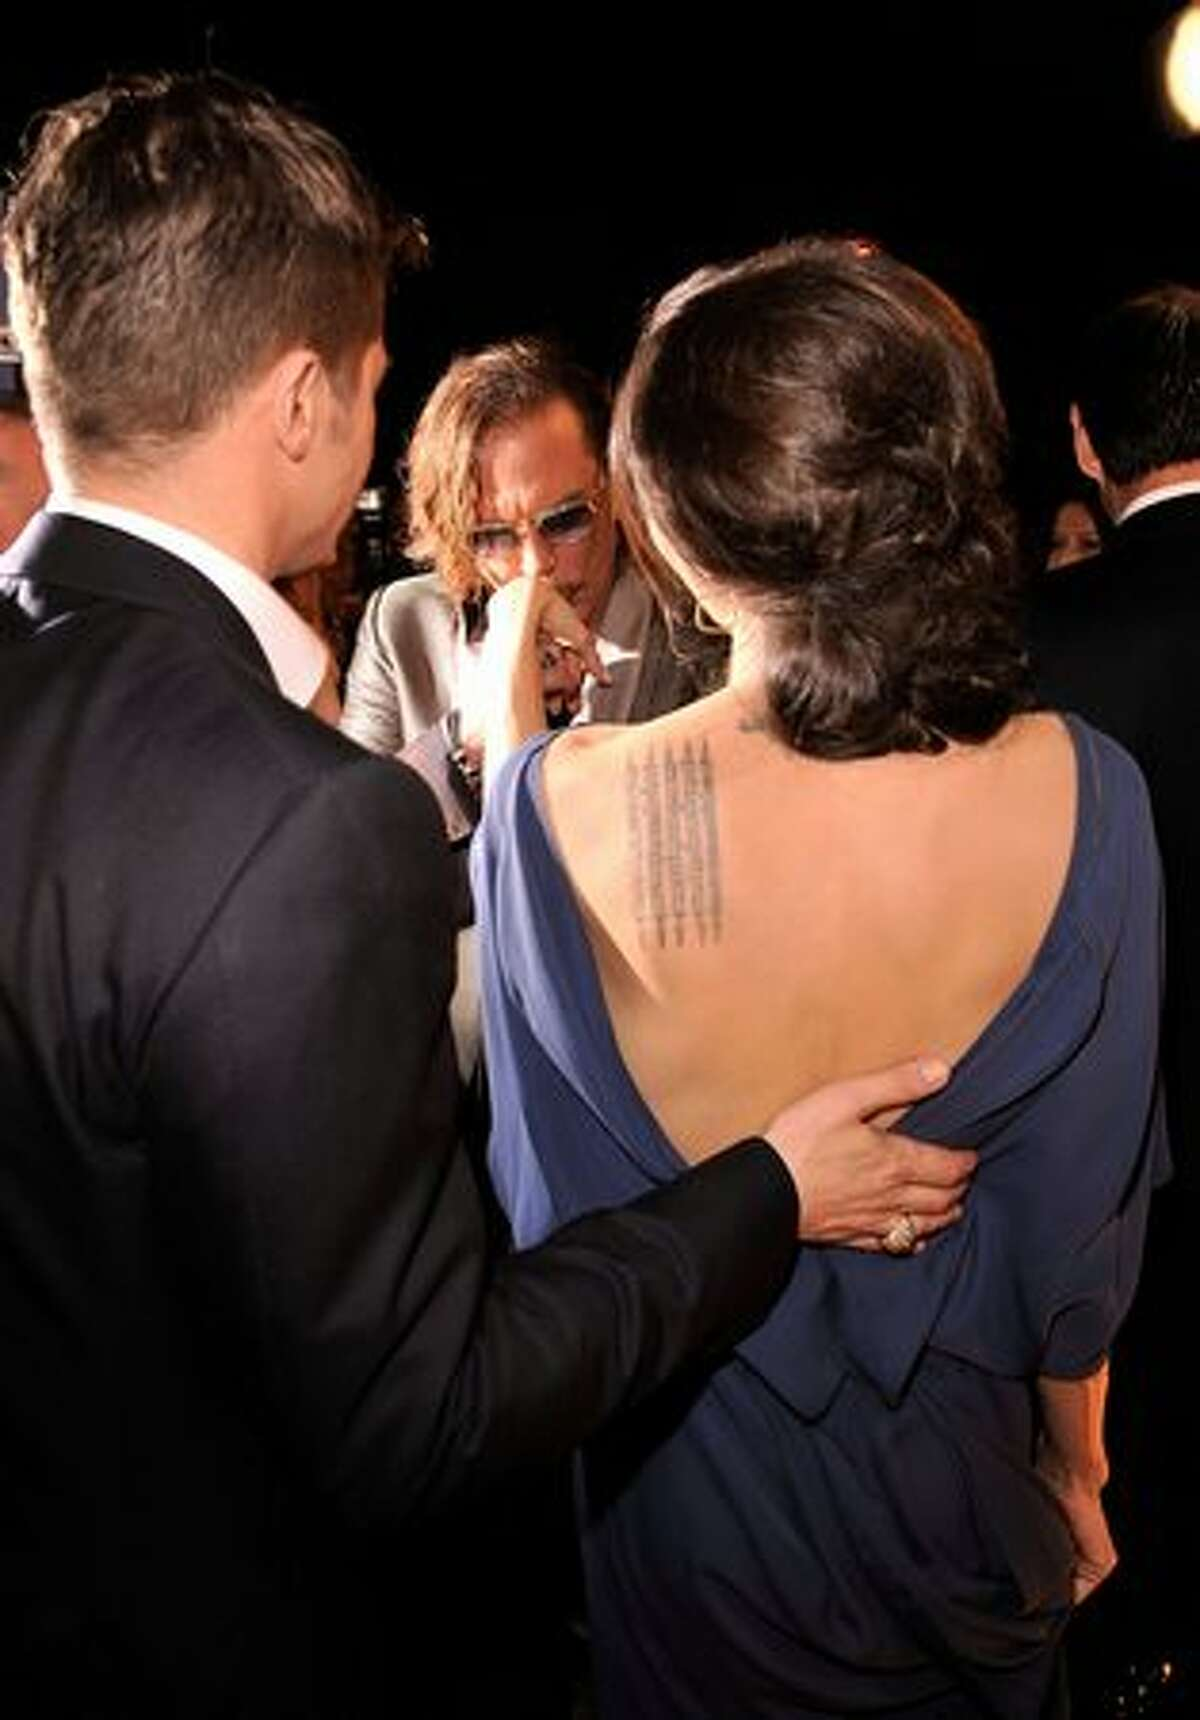 From left, actors Brad Pitt, Mickey Rourke and Angelina Jolie in the audience at the 15th annual Screen Actors Guild Awards held at the Shrine Auditorium on Jan. 25 in Los Angeles.